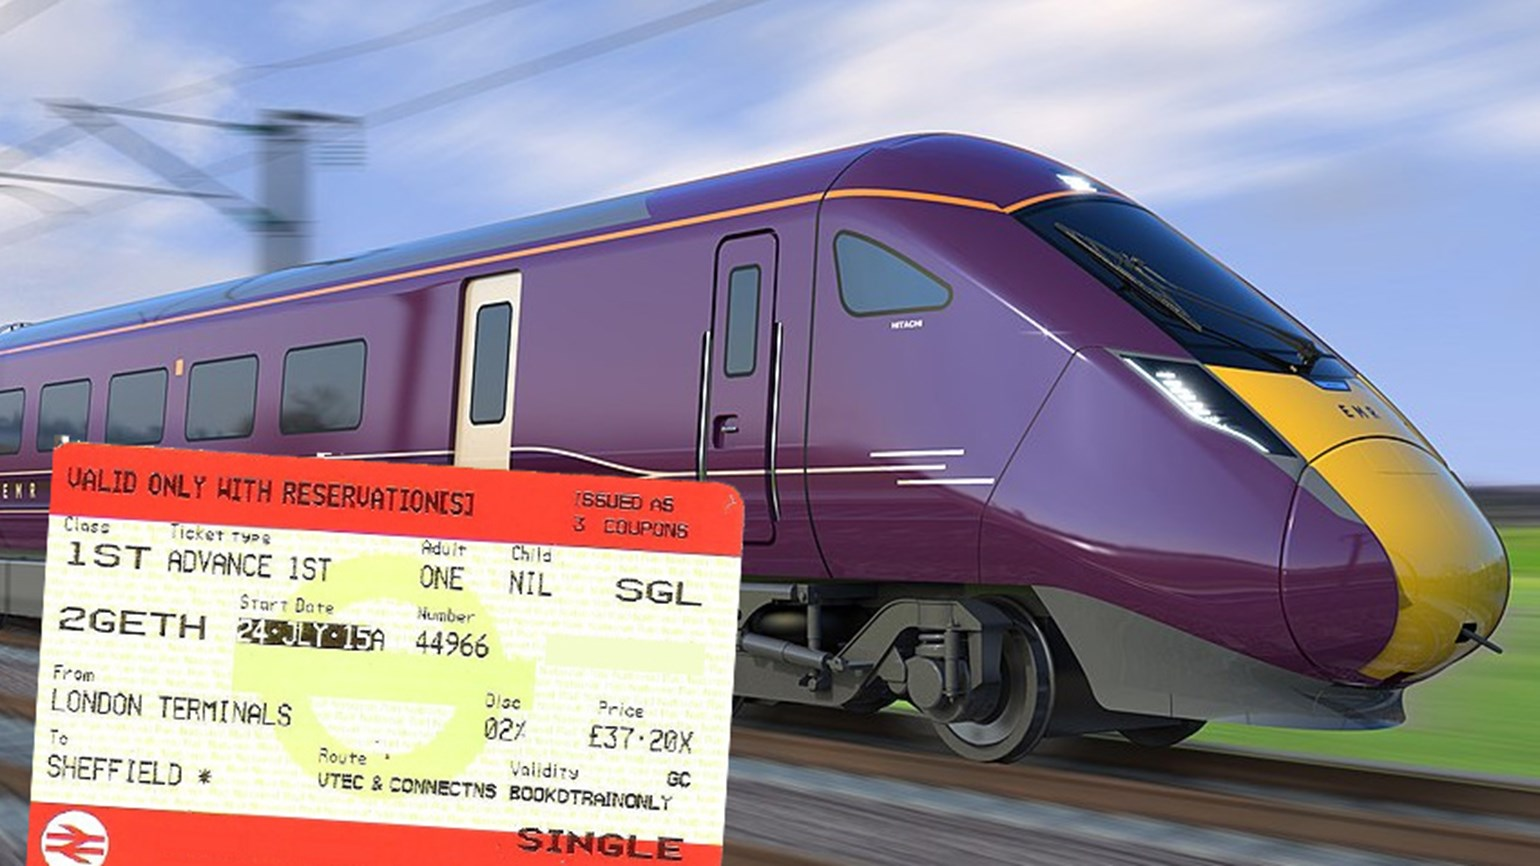 Government waives admin fees on changing UK advance rail tickets